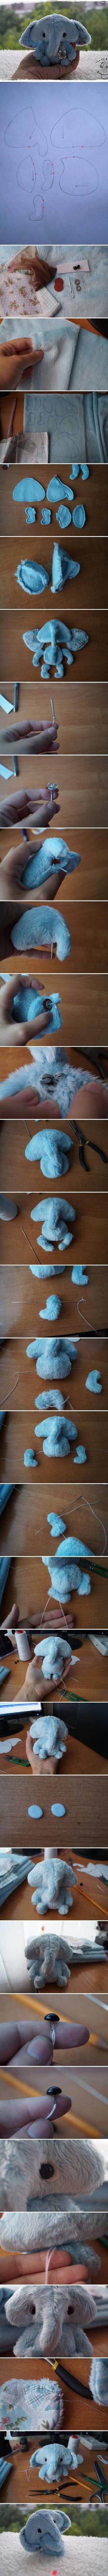 35 best Sewing images on Pinterest